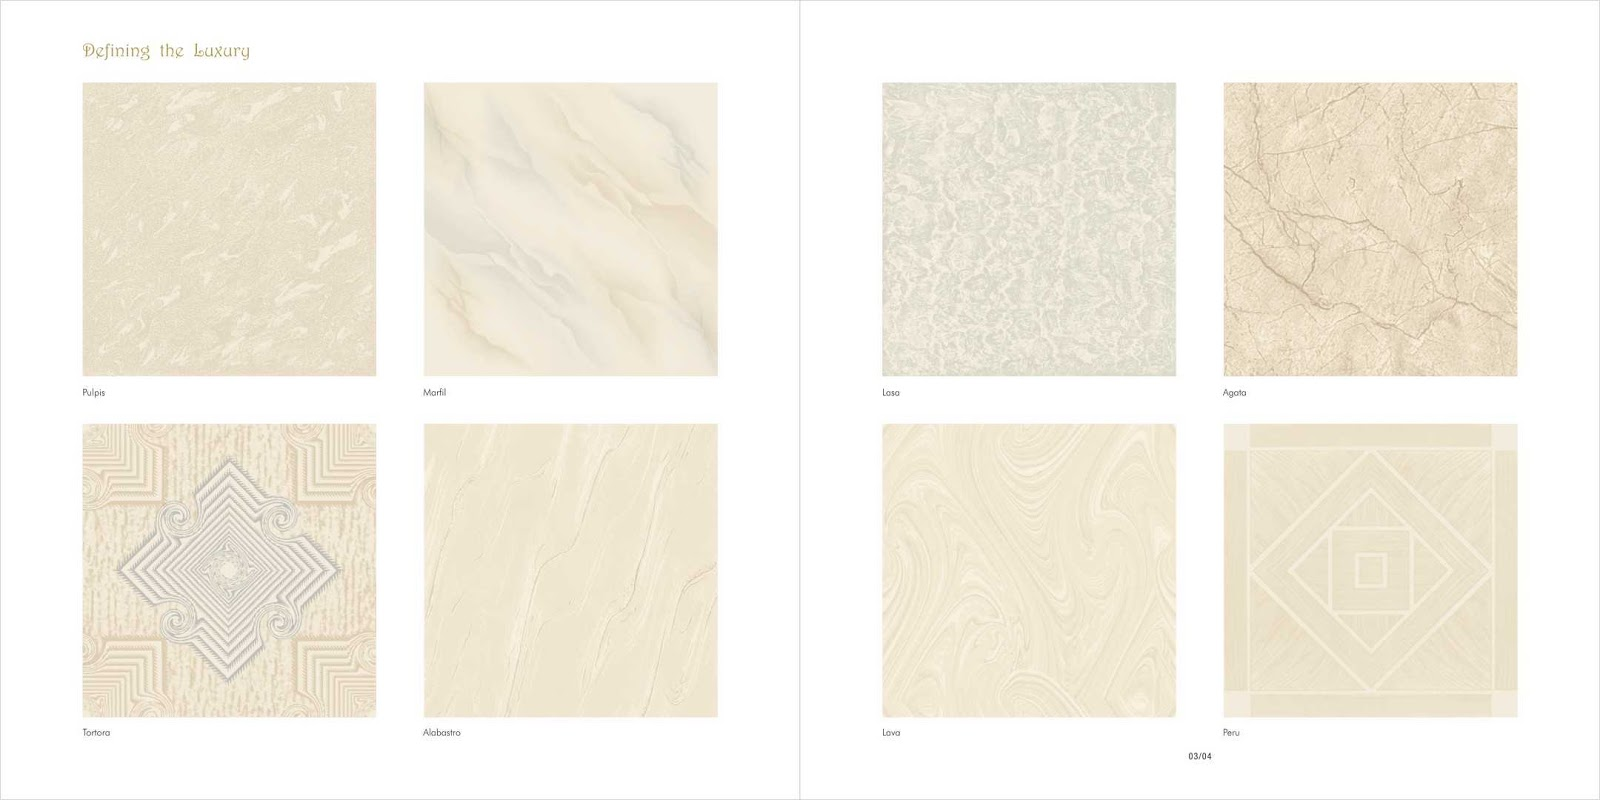 Vitrified tiles manufacturers in ceramic directory the future of we vitrified tiles manufacturers like floor tiles wall tiles bathroom tiles kitchen tilesoutdoor tiles etct may ceramic directory natural textures dailygadgetfo Gallery